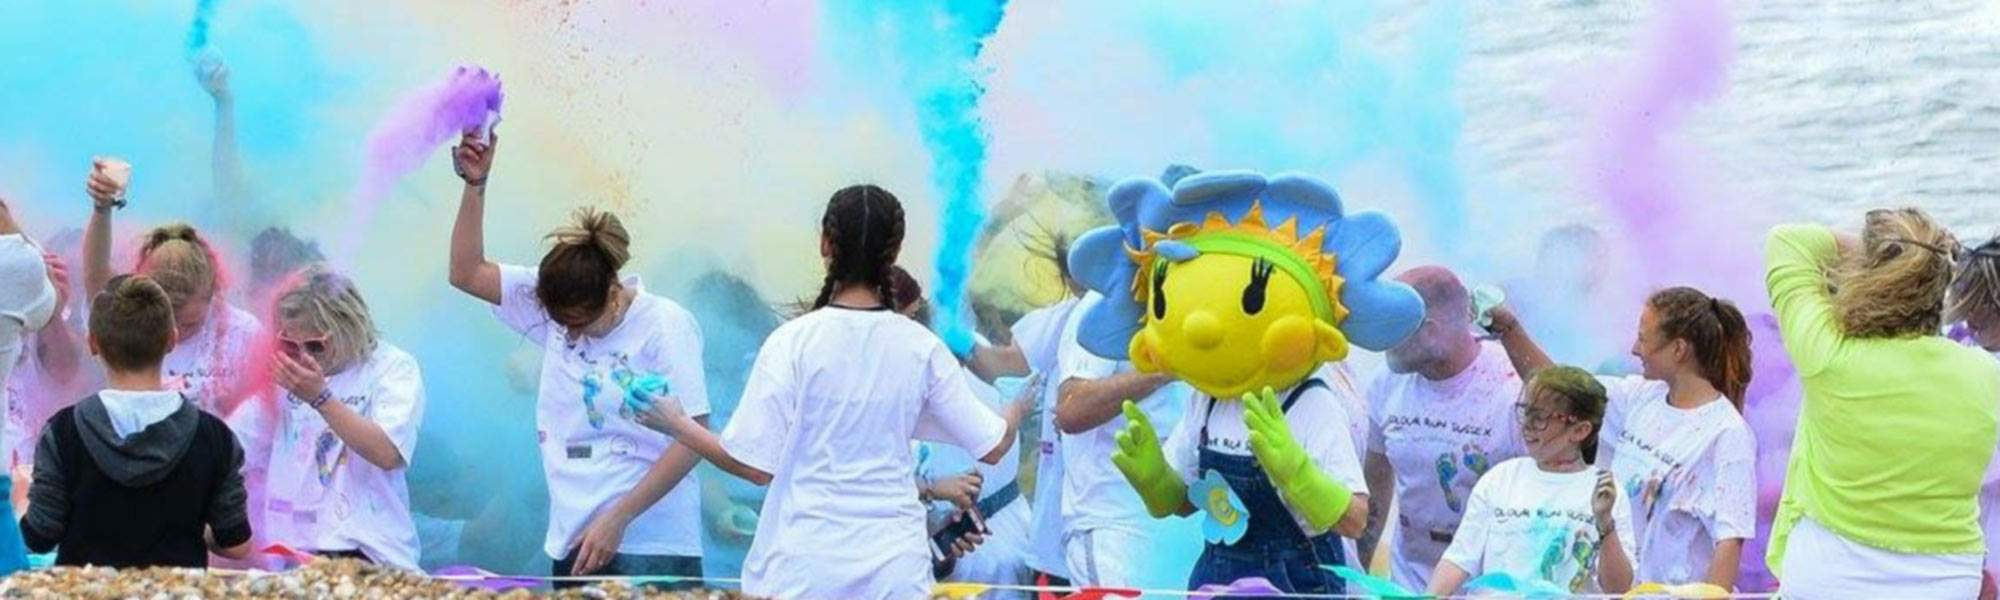 Events for Children Colour Run Sussex - Eastbournes ONLY Colour Run, Up to 60% off